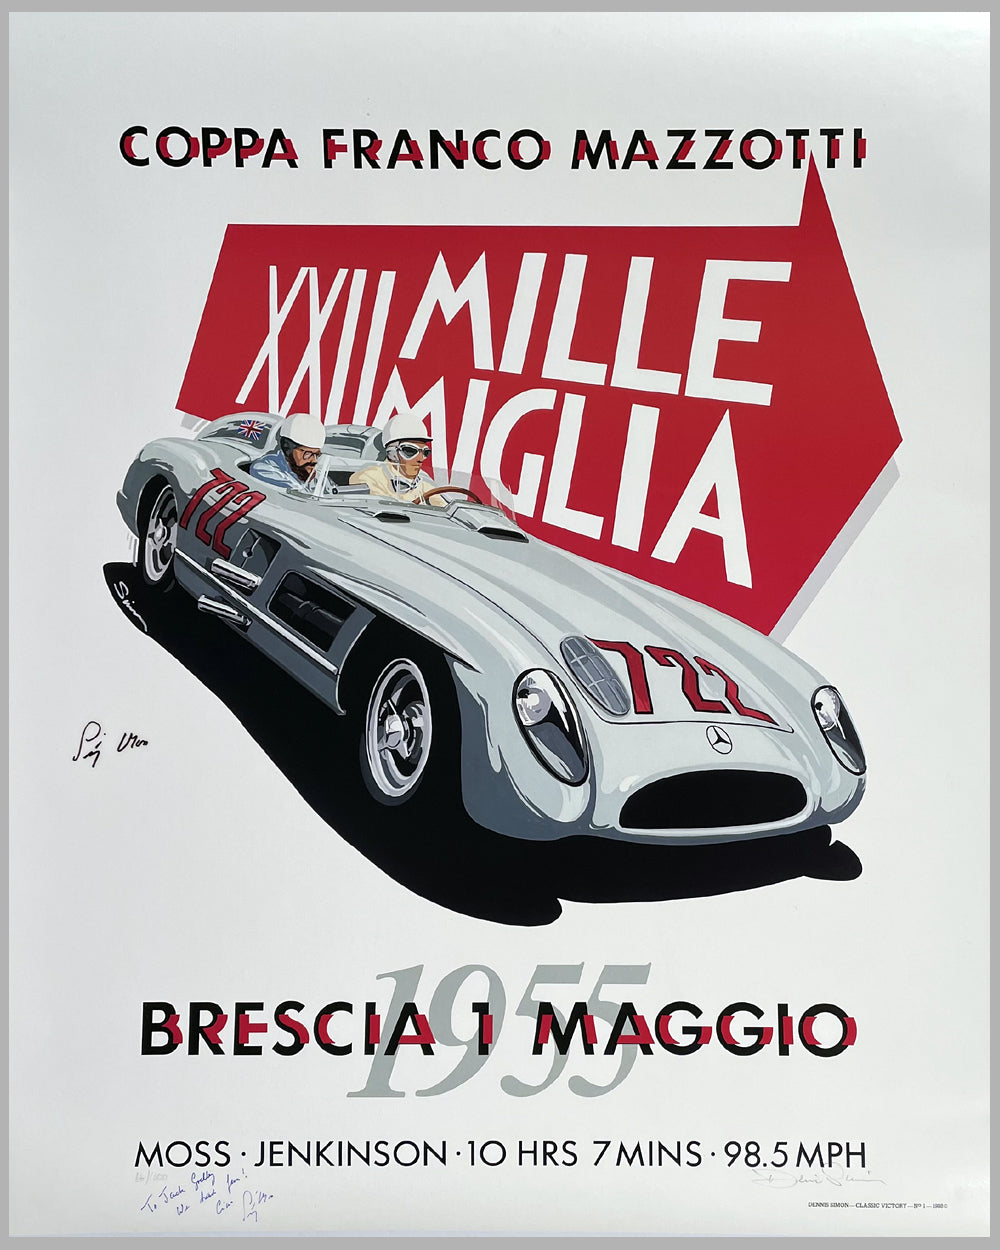 Mille Miglia 1955 commemorative poster by Dennis Simon, autographed by Stirling Moss